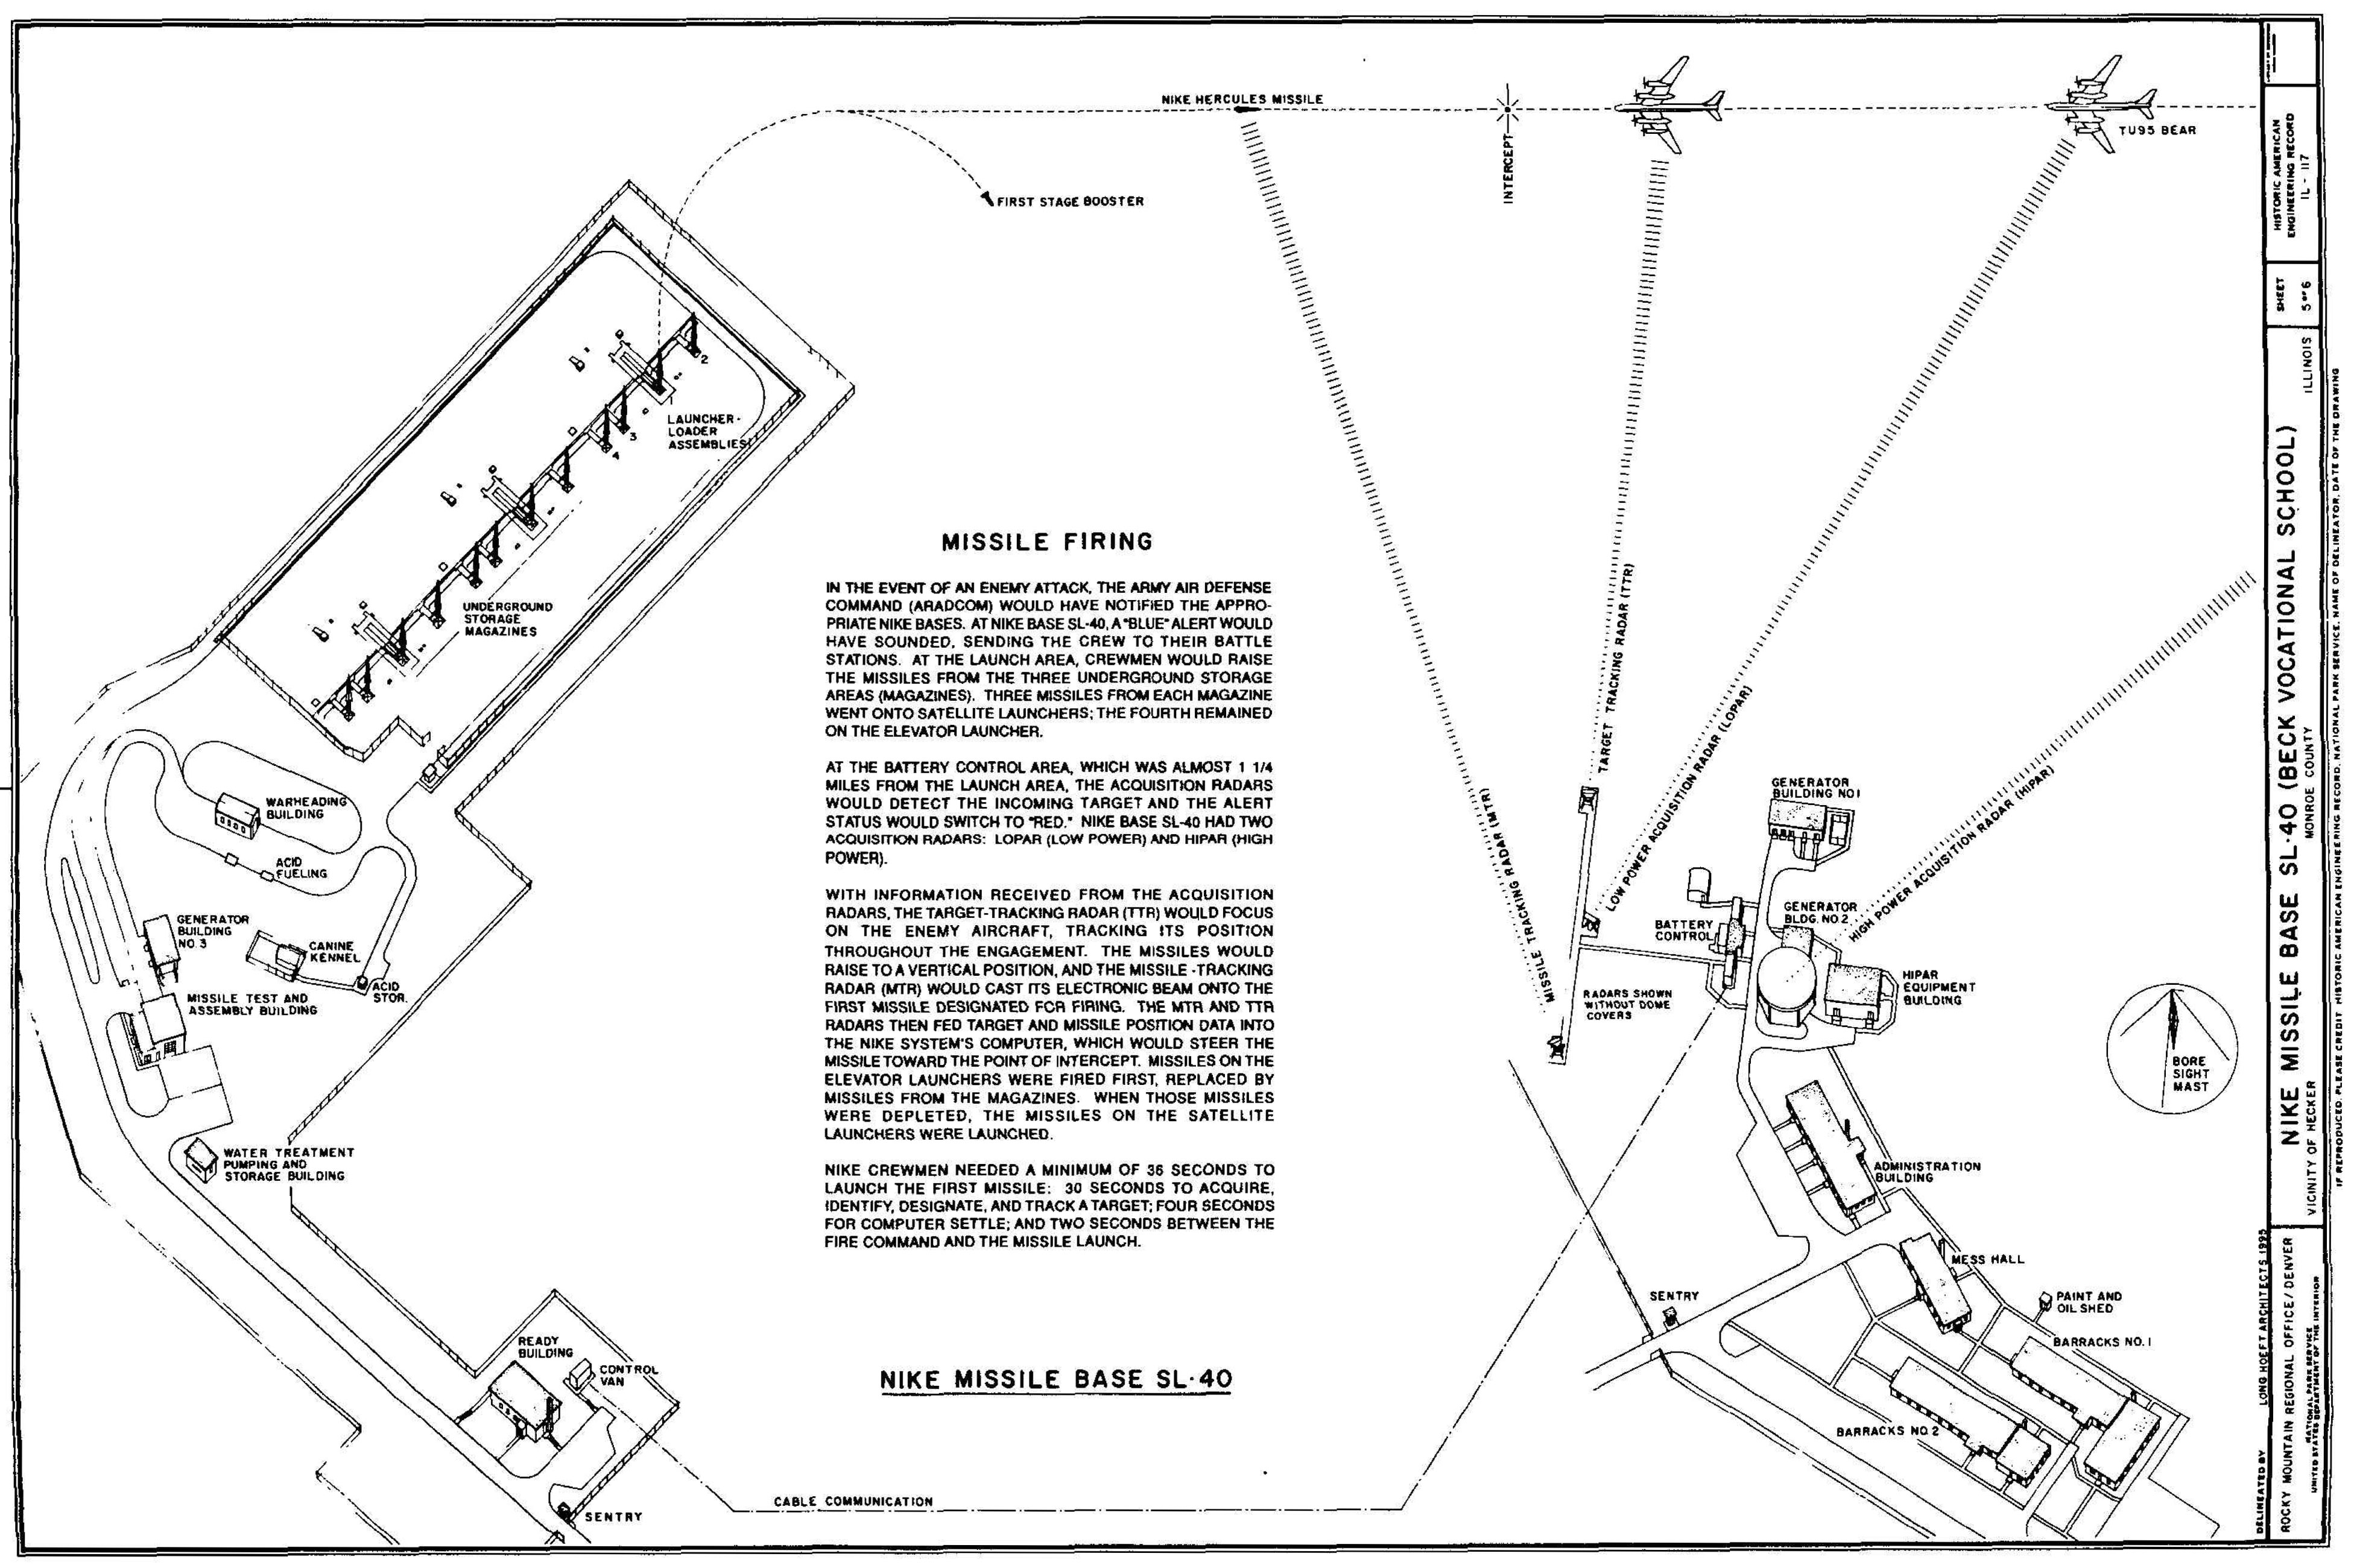 Last Line Of Defense Nike Missile Sites In Illinois Wiring Diagram For A 3 Phase Generator Also Barbed Wire Fence Cost Surrounded By Chain Link And Fencing The Kennel Held Training Equipment Leashes Dog Food Grooming Tools Canine Areas Often